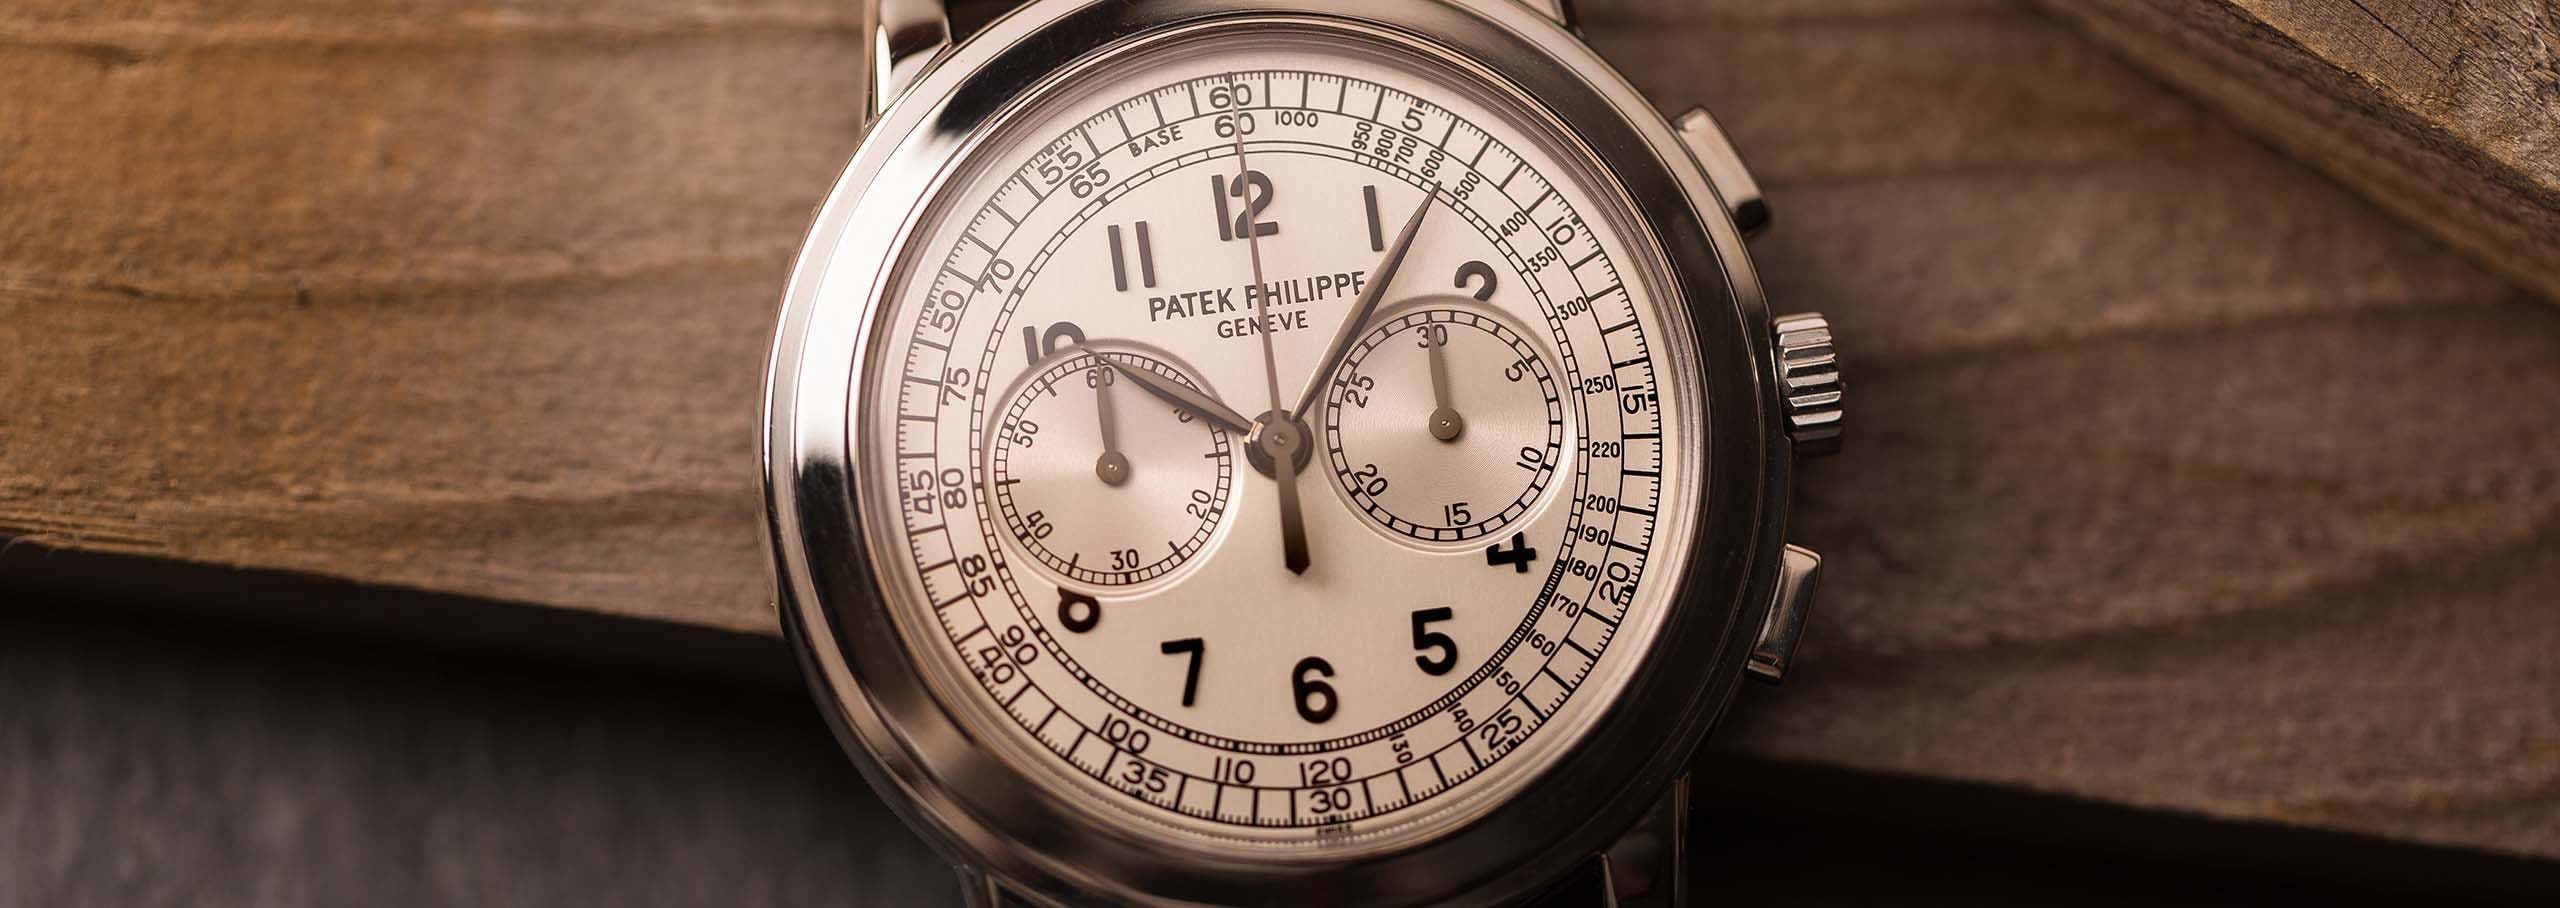 Patek Philippe: A Reference To The Past